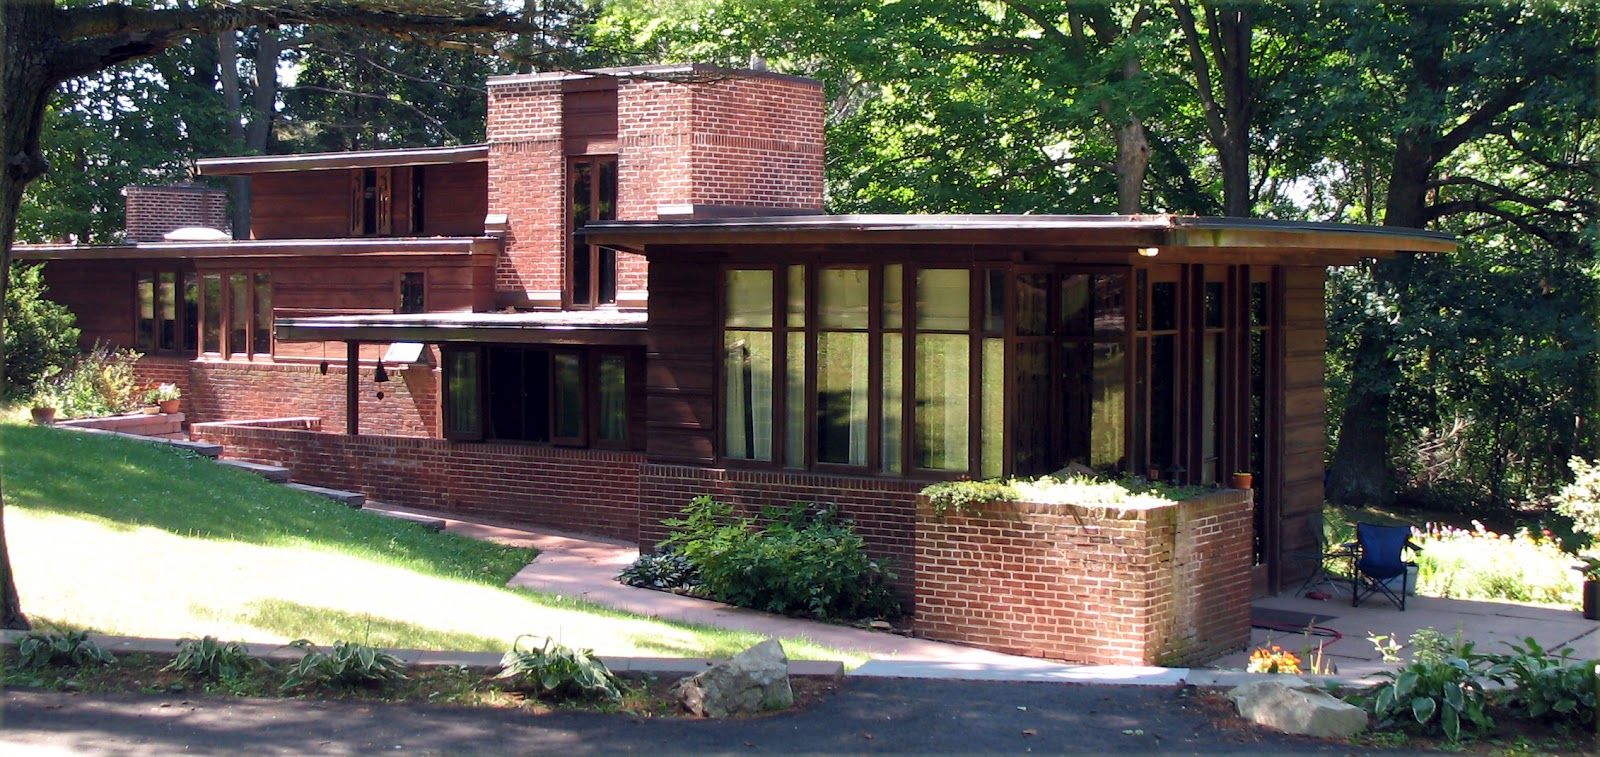 Beautiful abodes the works of frank lloyd wright for A beautiful you at vesuvio salon studios